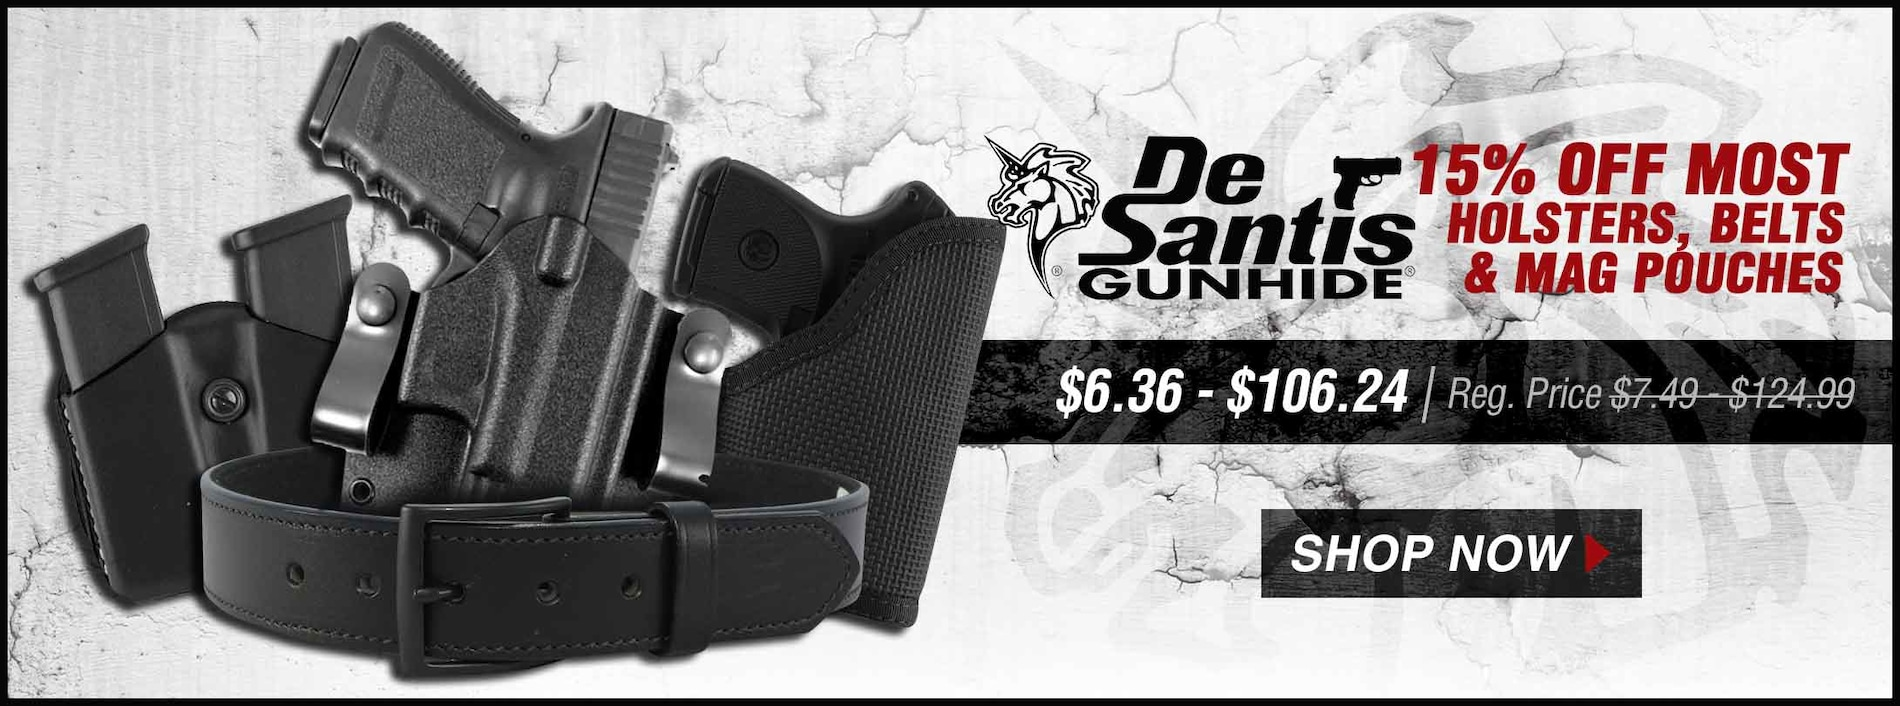 15% Off Most DeSantis Holsters, Belts & Mag Pouches